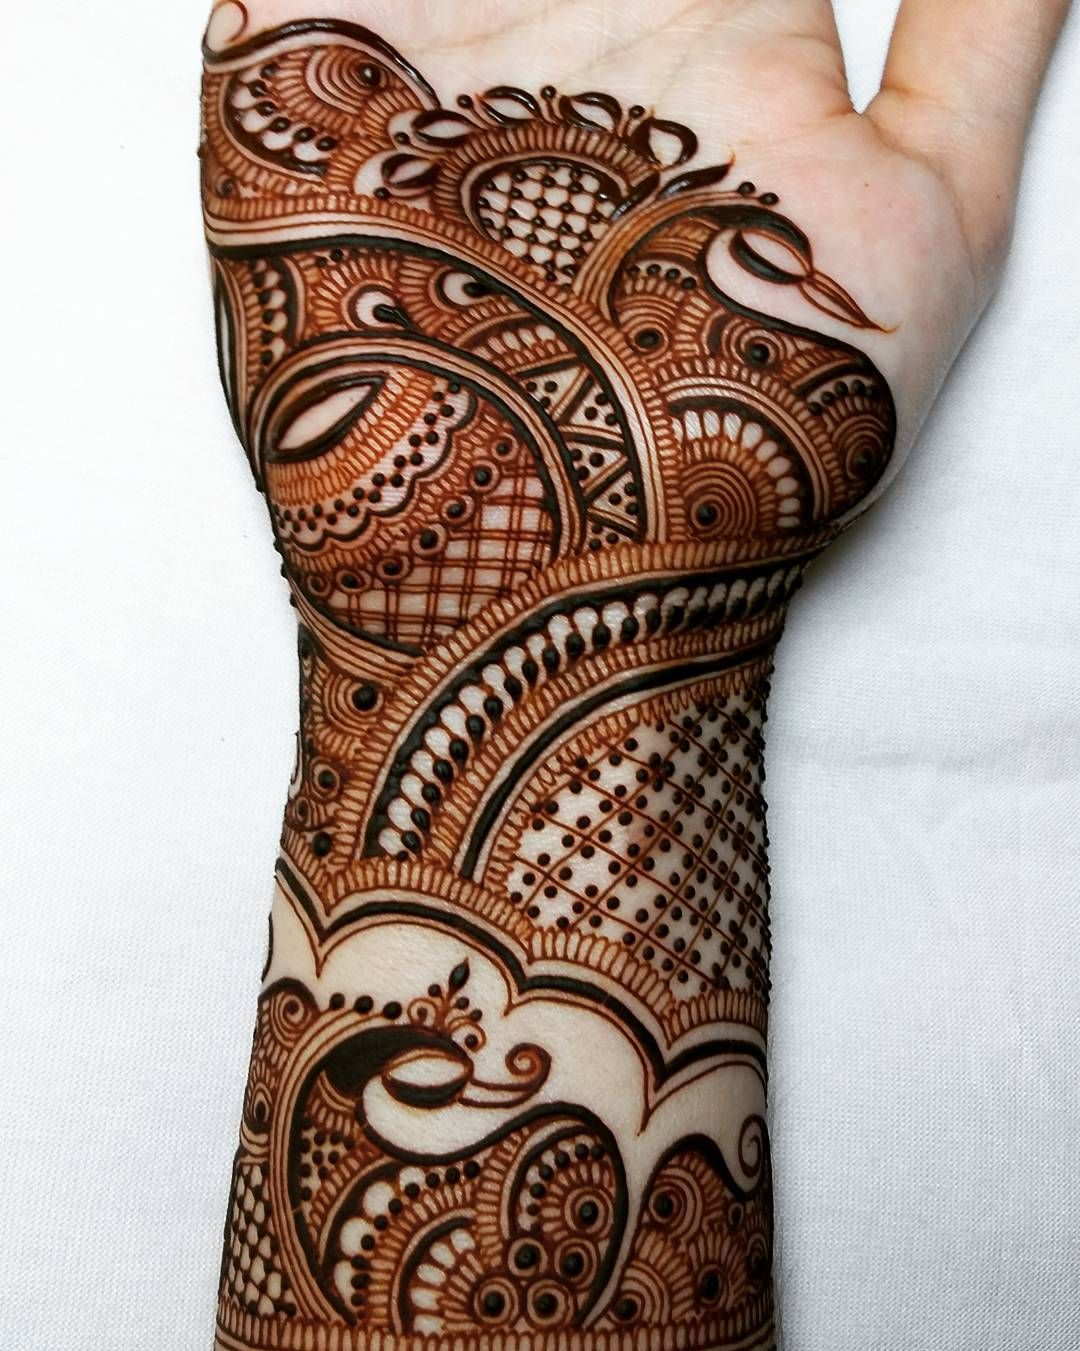 beacause evry single details matters to learn henna art and henna